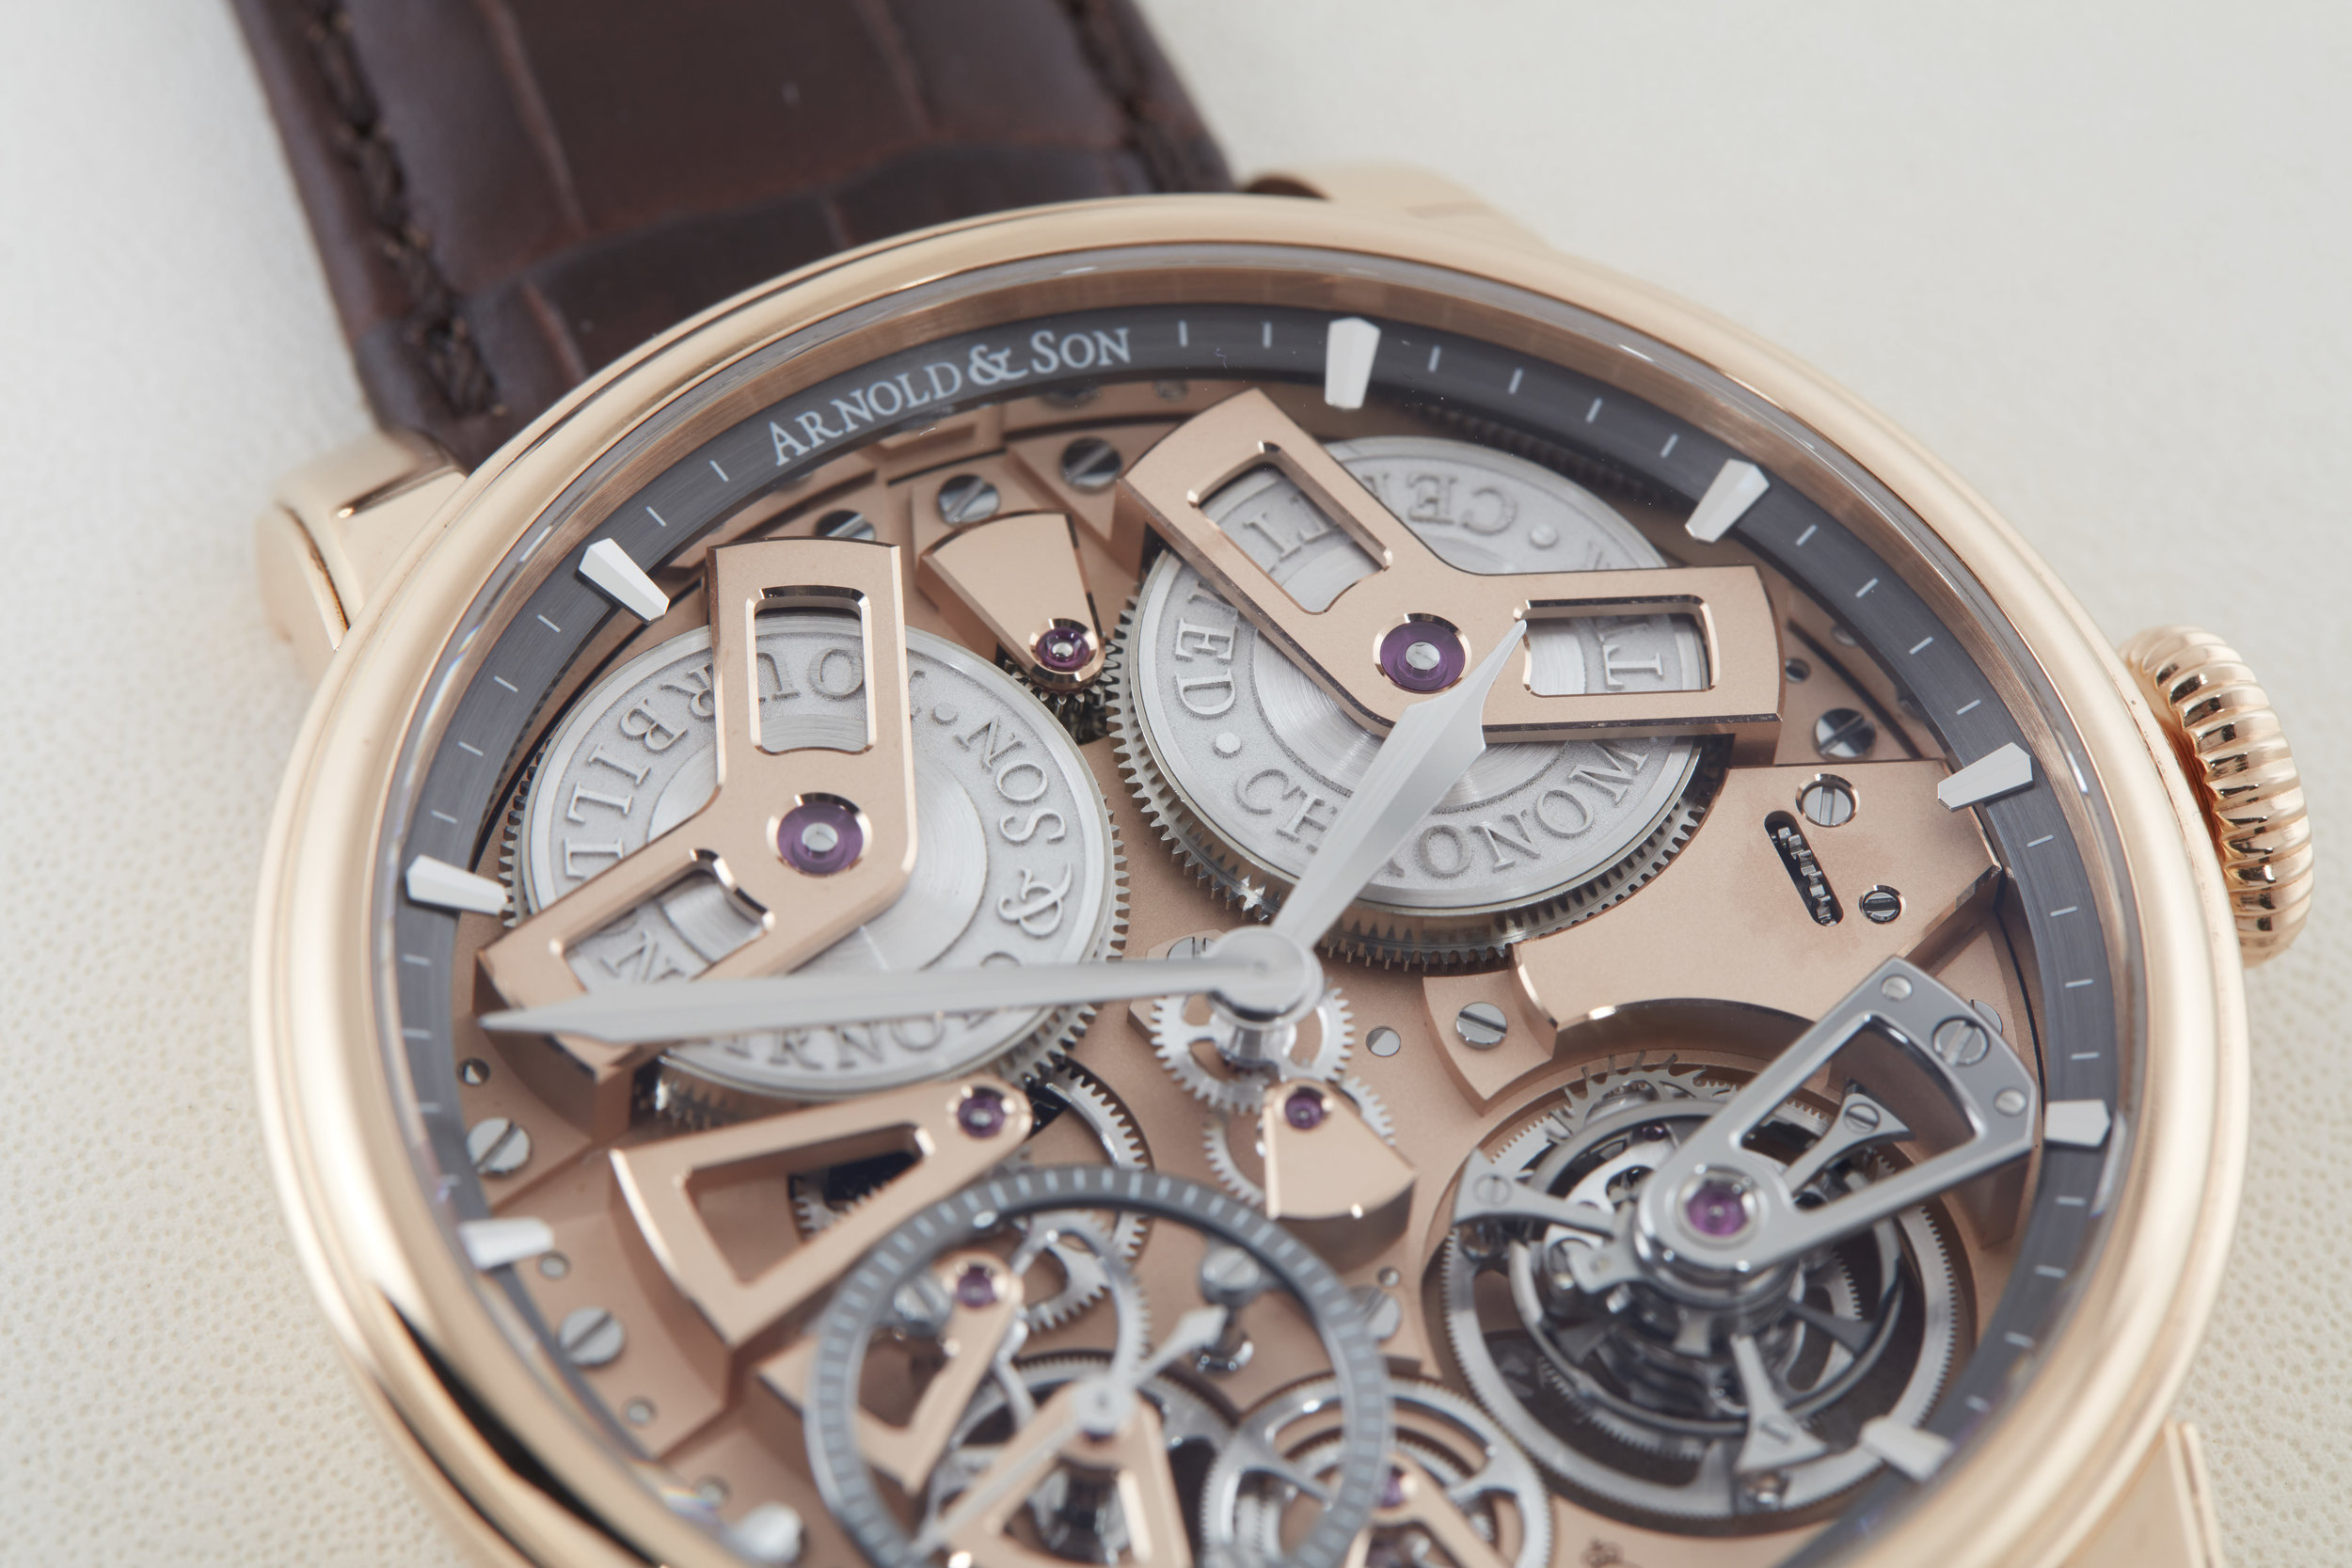 Arnold & Son Tourbillon Chronometer No. 36 in red gold